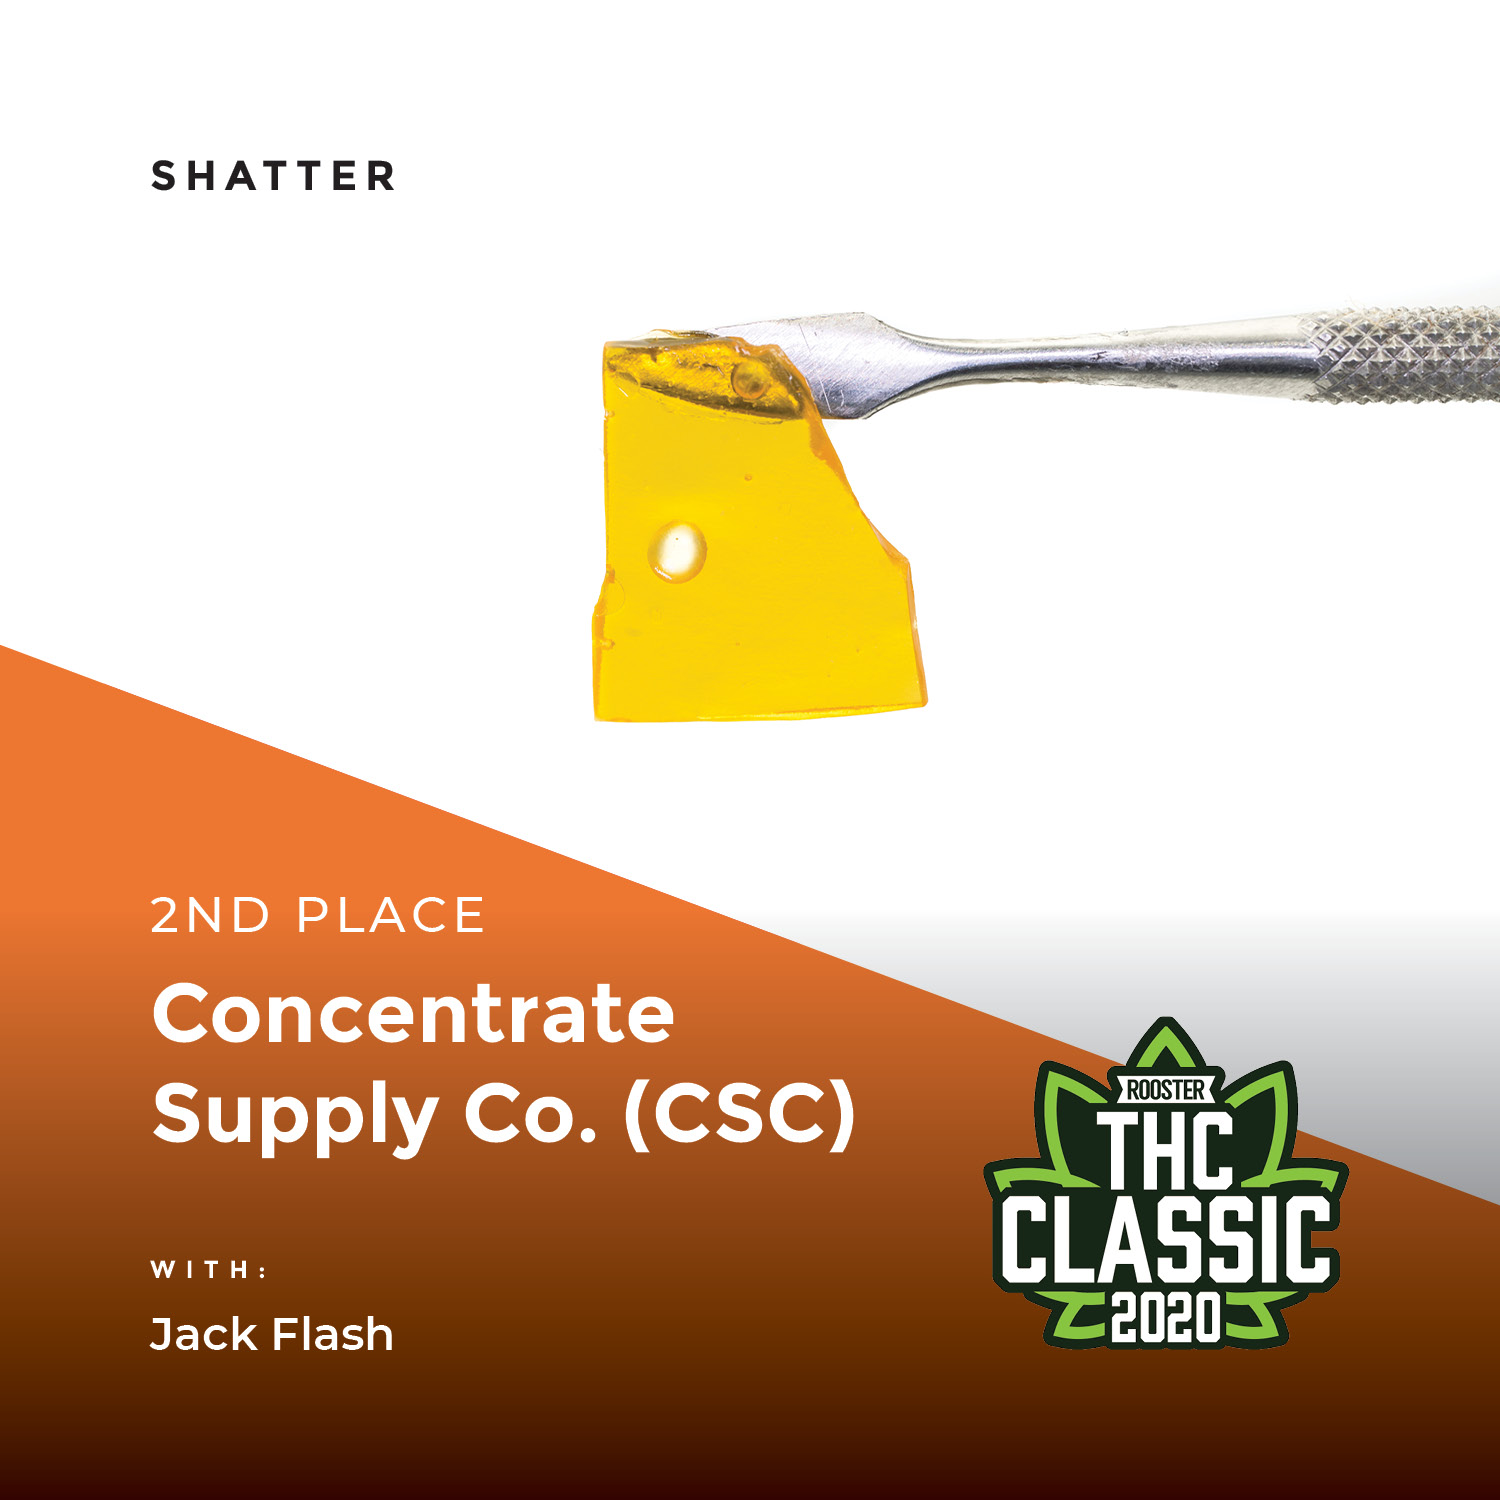 Best Colorado Cannabis Products: Shatter